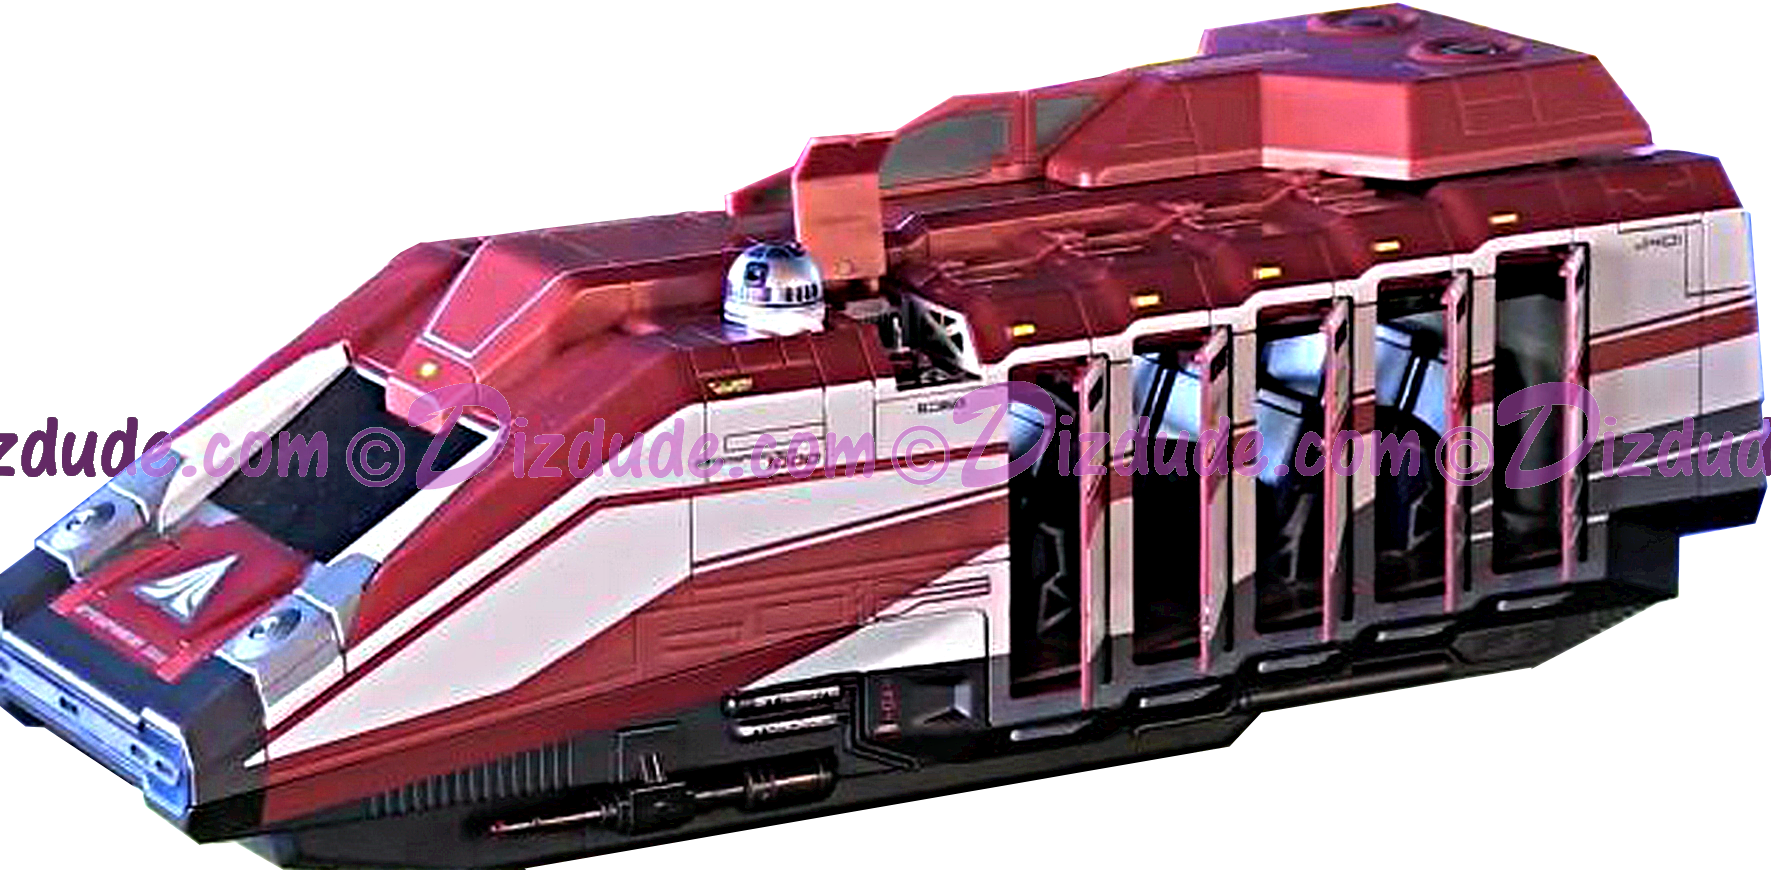 Doors open on the Star Tours / Star Wars StarSpeeder 1000 Vehicle Playset - Disney Star Wars: The Force Awakens ~ Jakku - © Dizdude.com